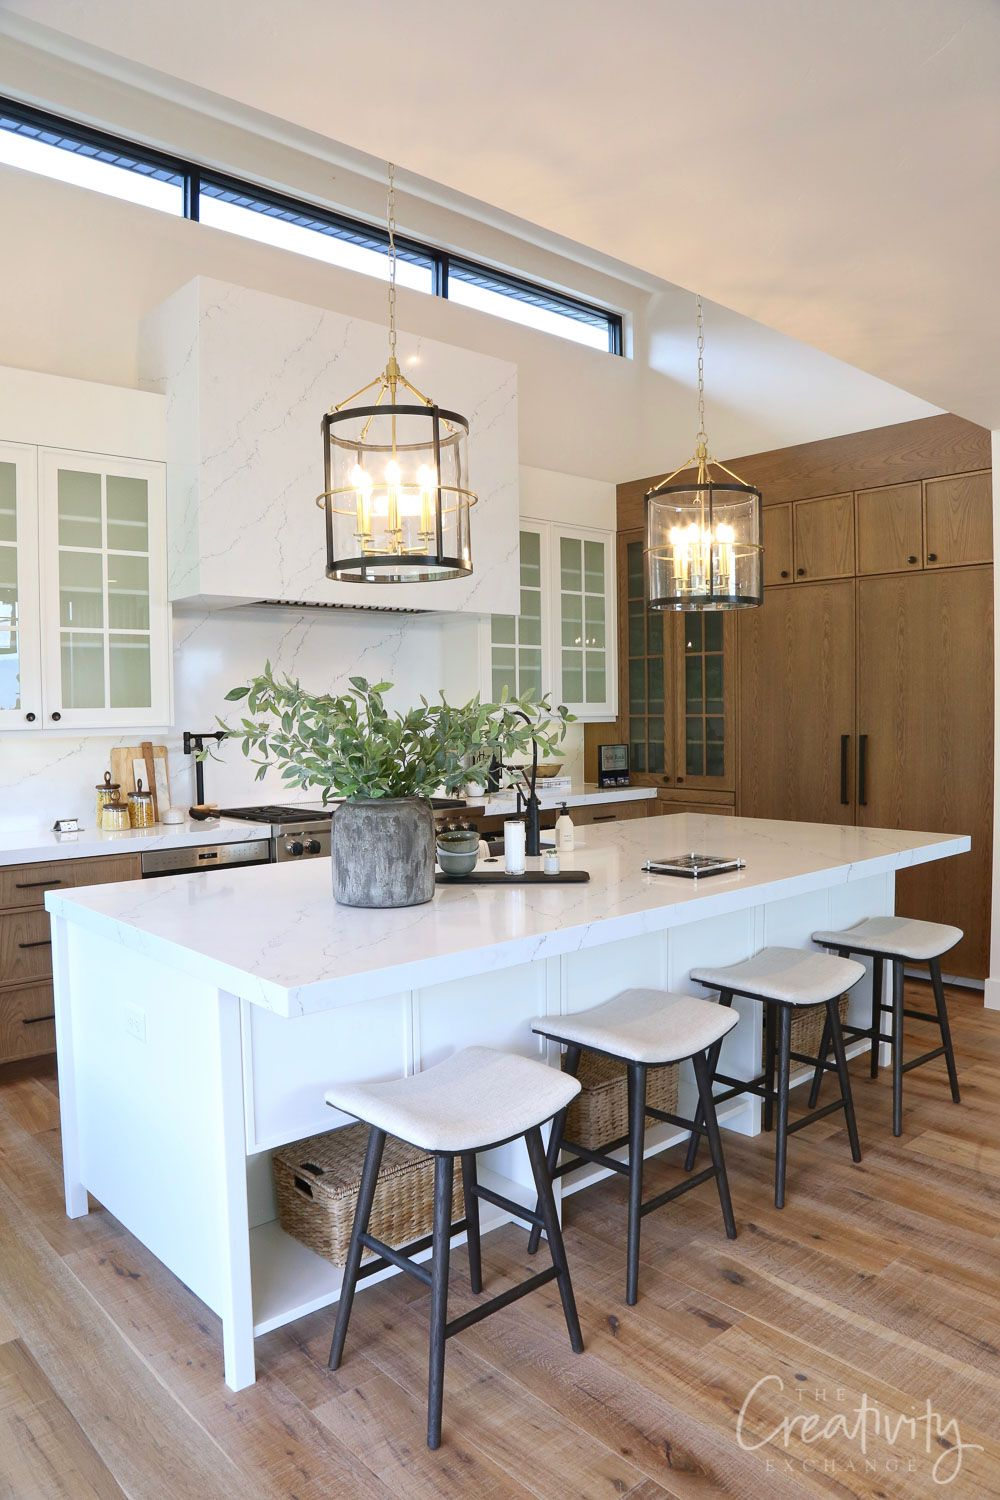 Best Utah Valley Parade Of Homes 2019 Home Decor Kitchen 400 x 300